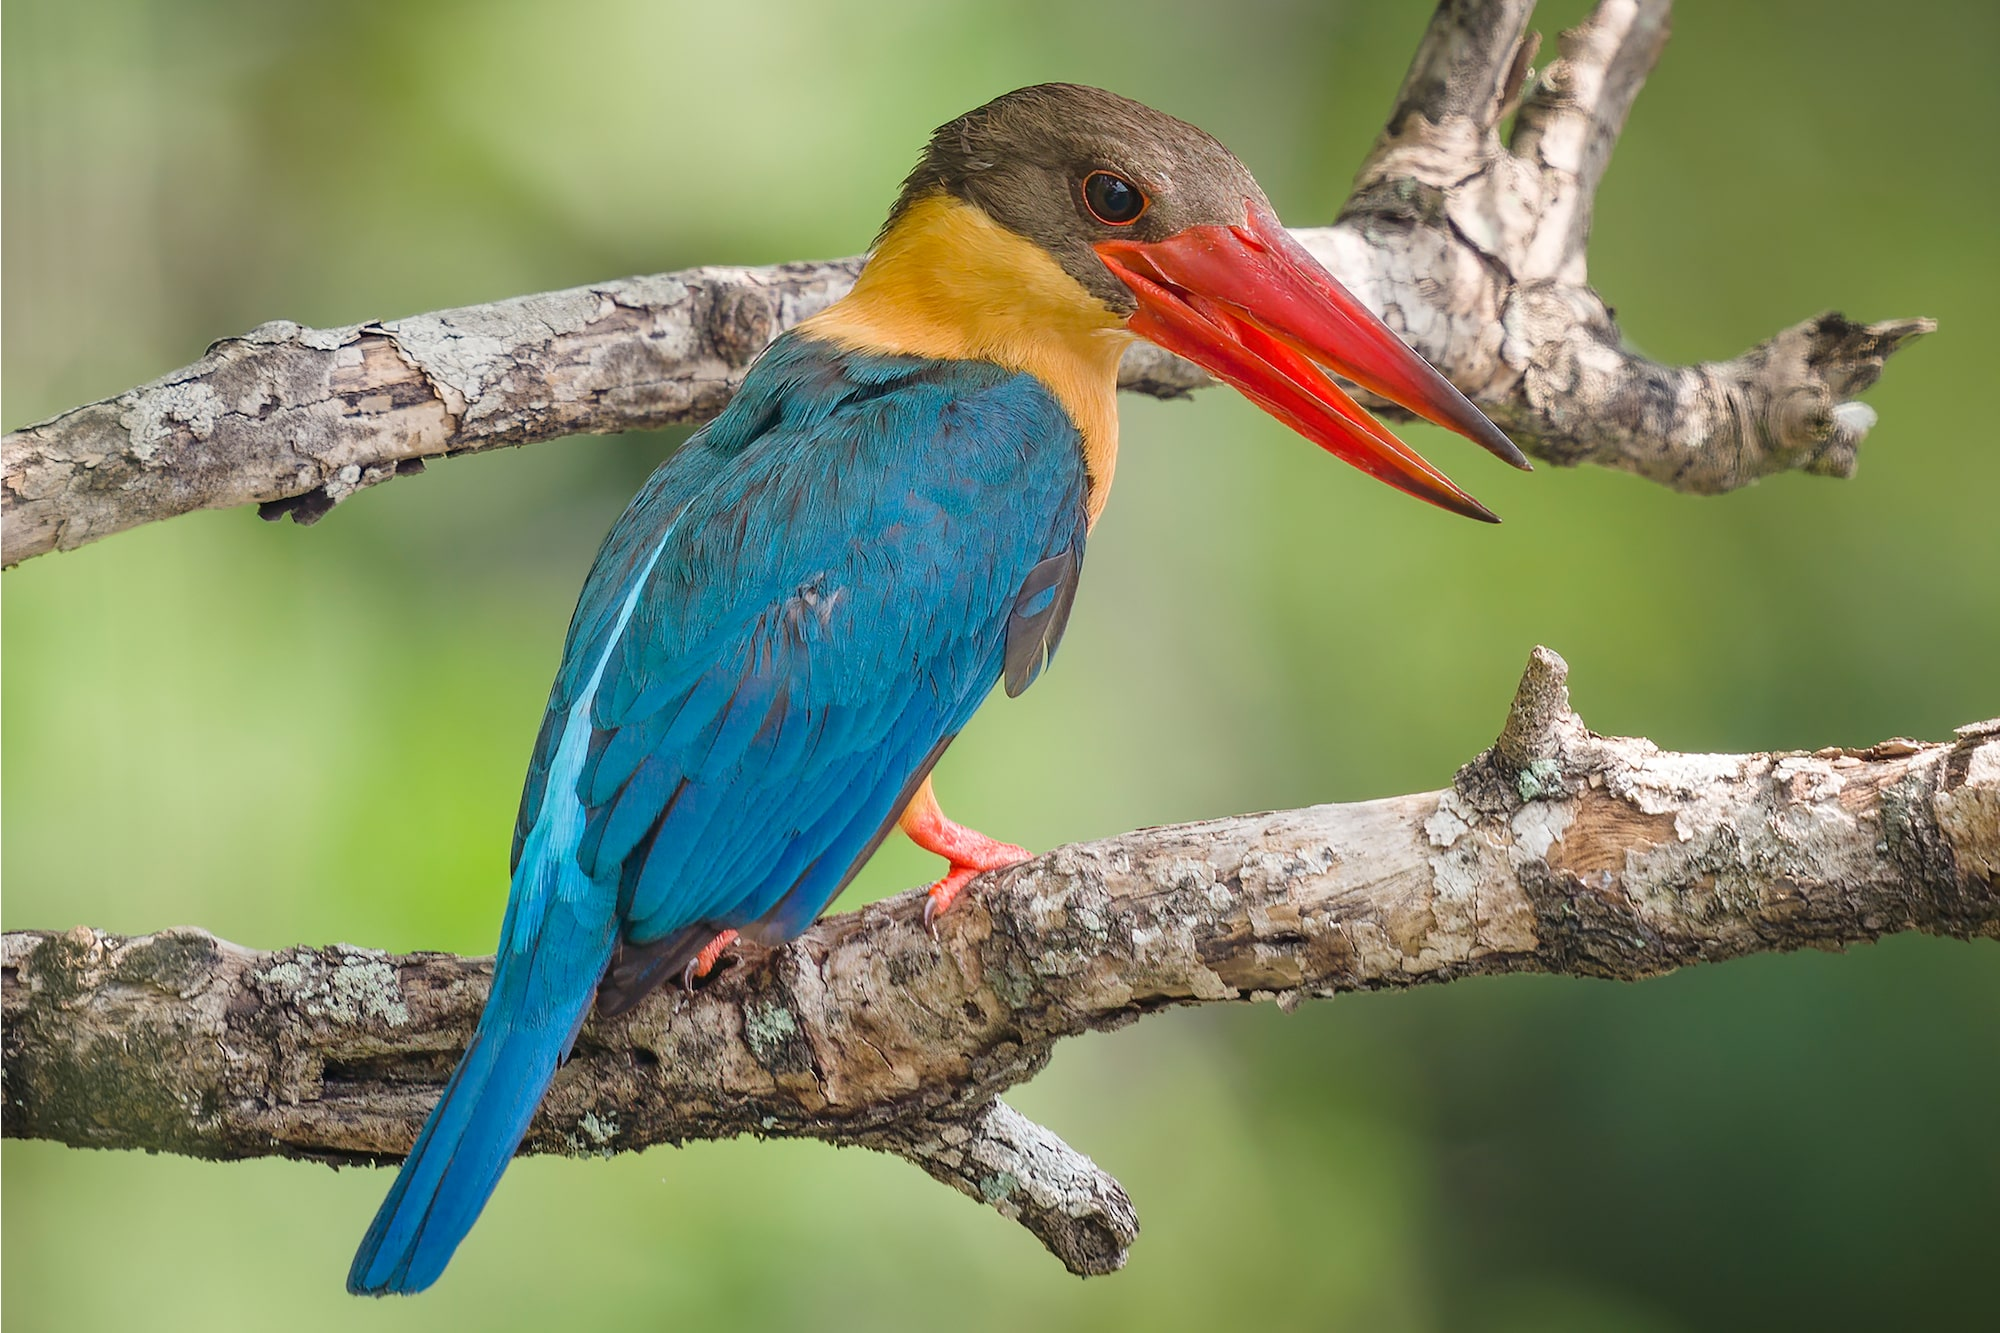 Sony Alpha 7R IV's 61 megapixels retain high resolution even after approx. 2x crop of Stork-Billed Kingfisher on branch.